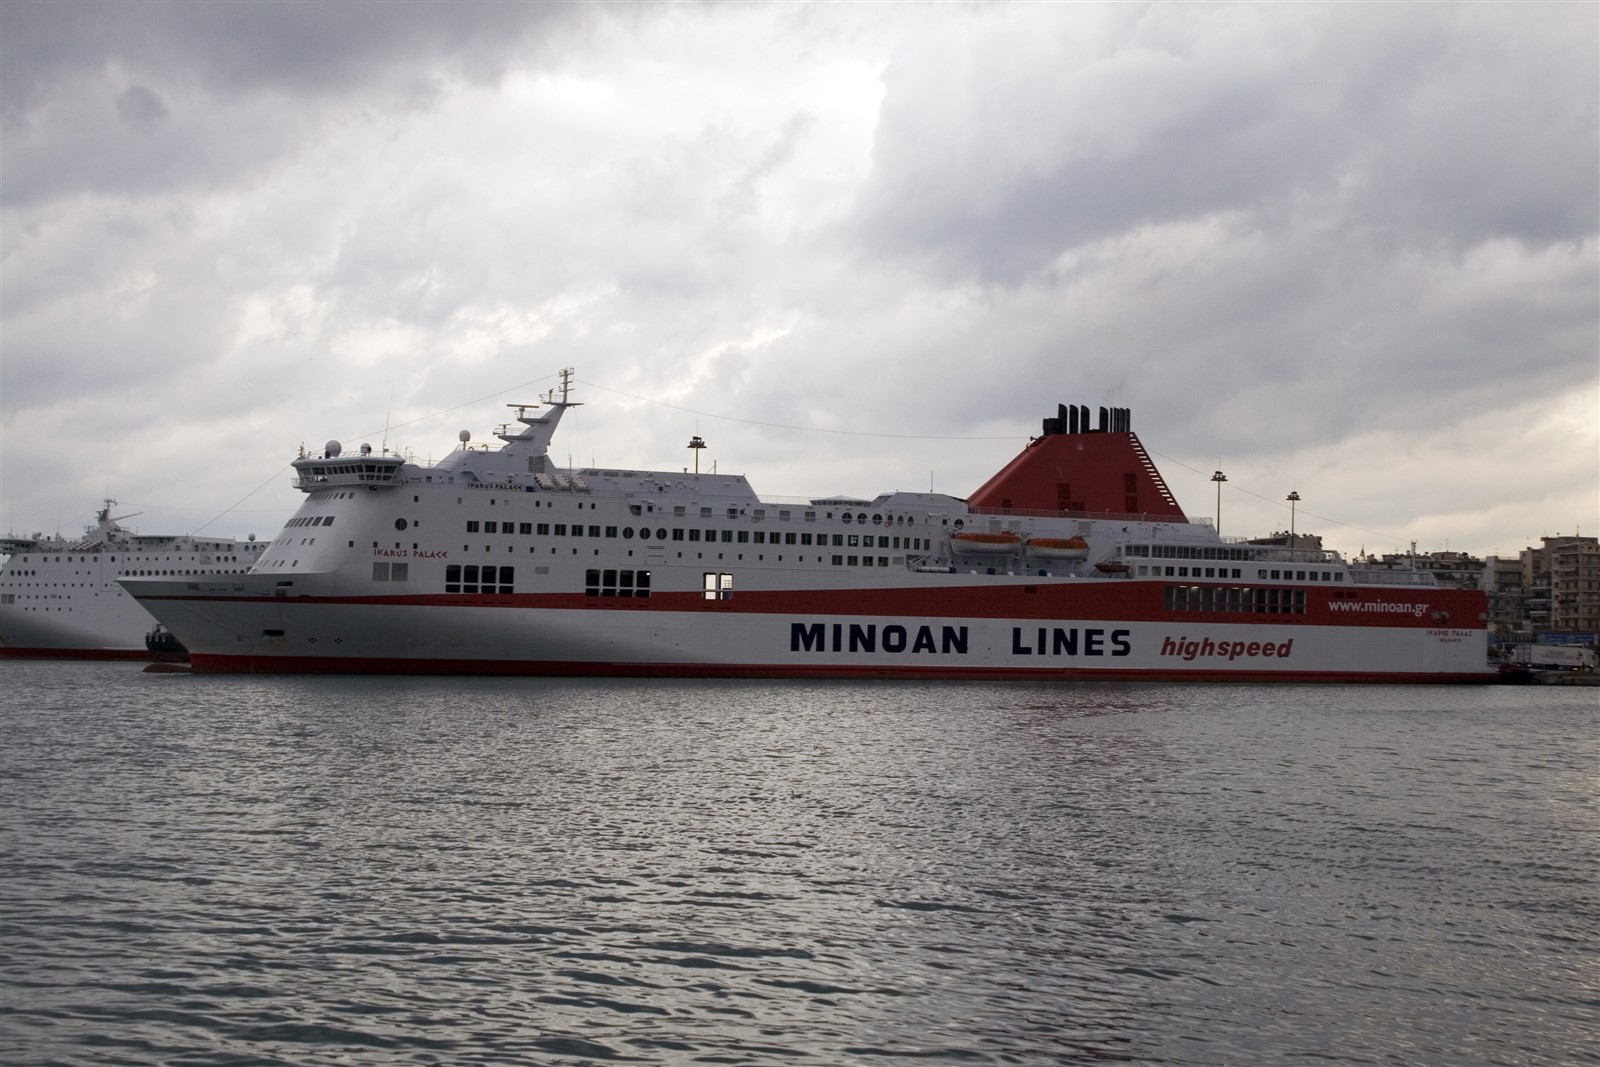 MINOAN LINES HSF Ikarus Palace 19_Personale 12Ge07